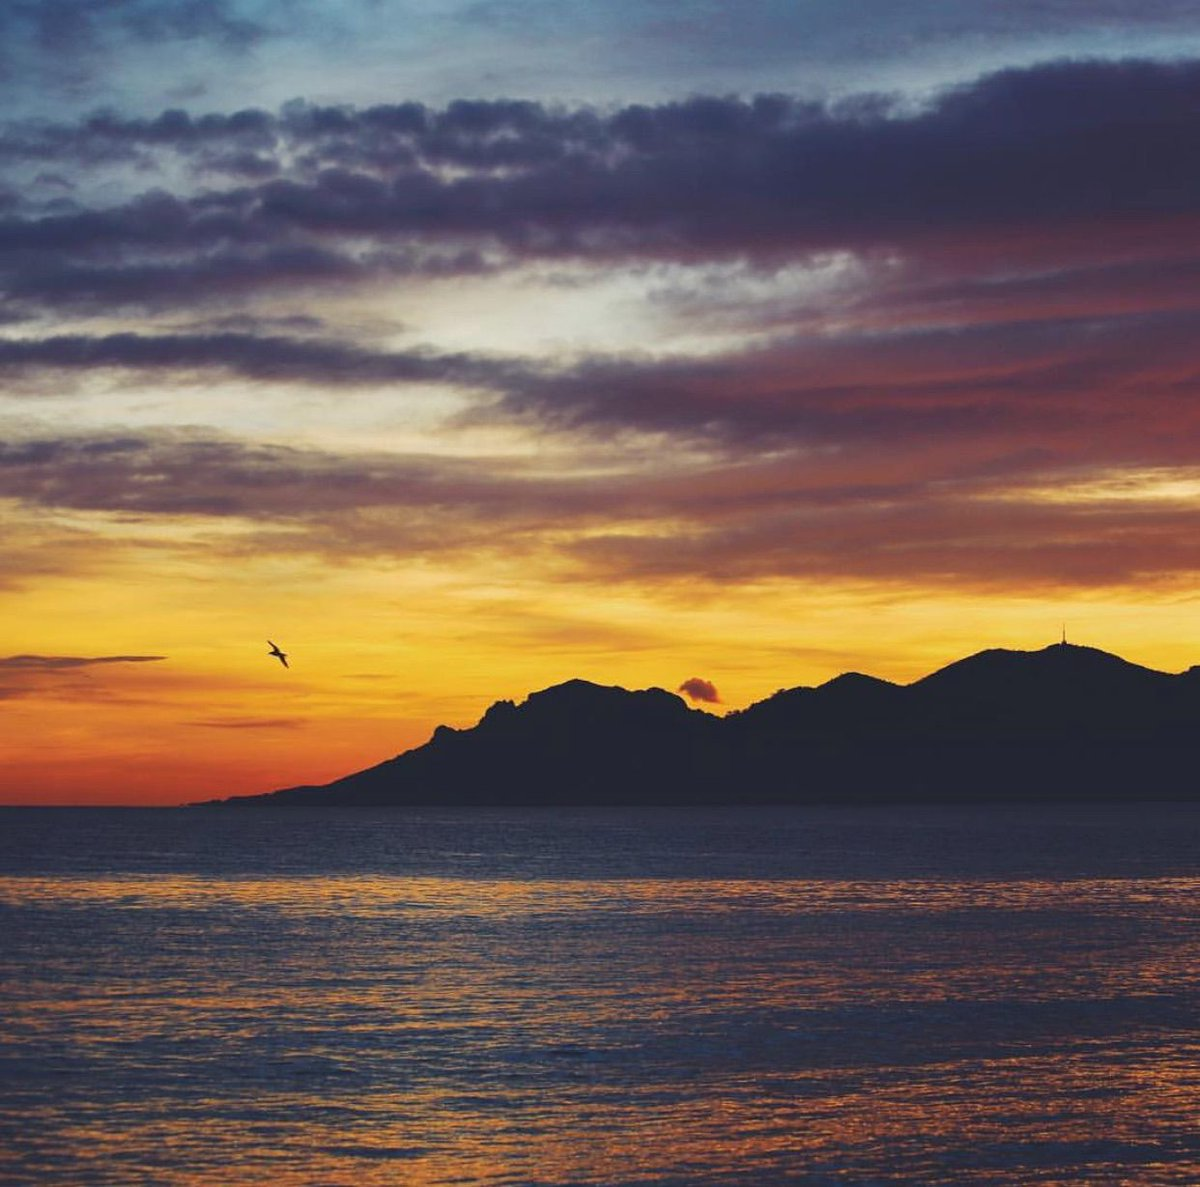 September nights in #Cannes   benricardphotography <br>http://pic.twitter.com/A5wLUJuWAe